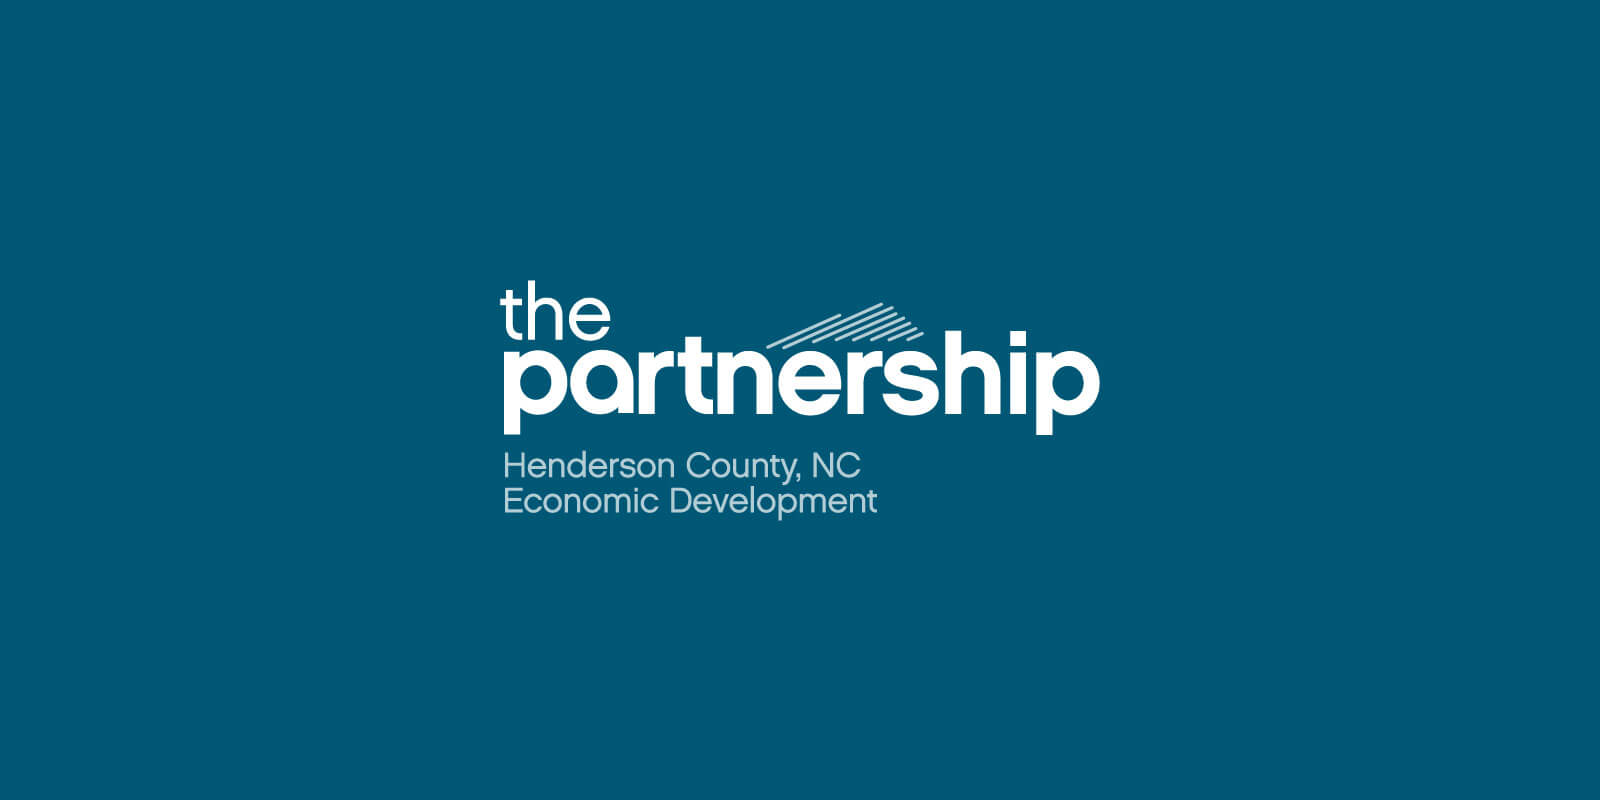 Henderson County Partnership for Economic Development (HCPED) logo in white, centered against a blue background